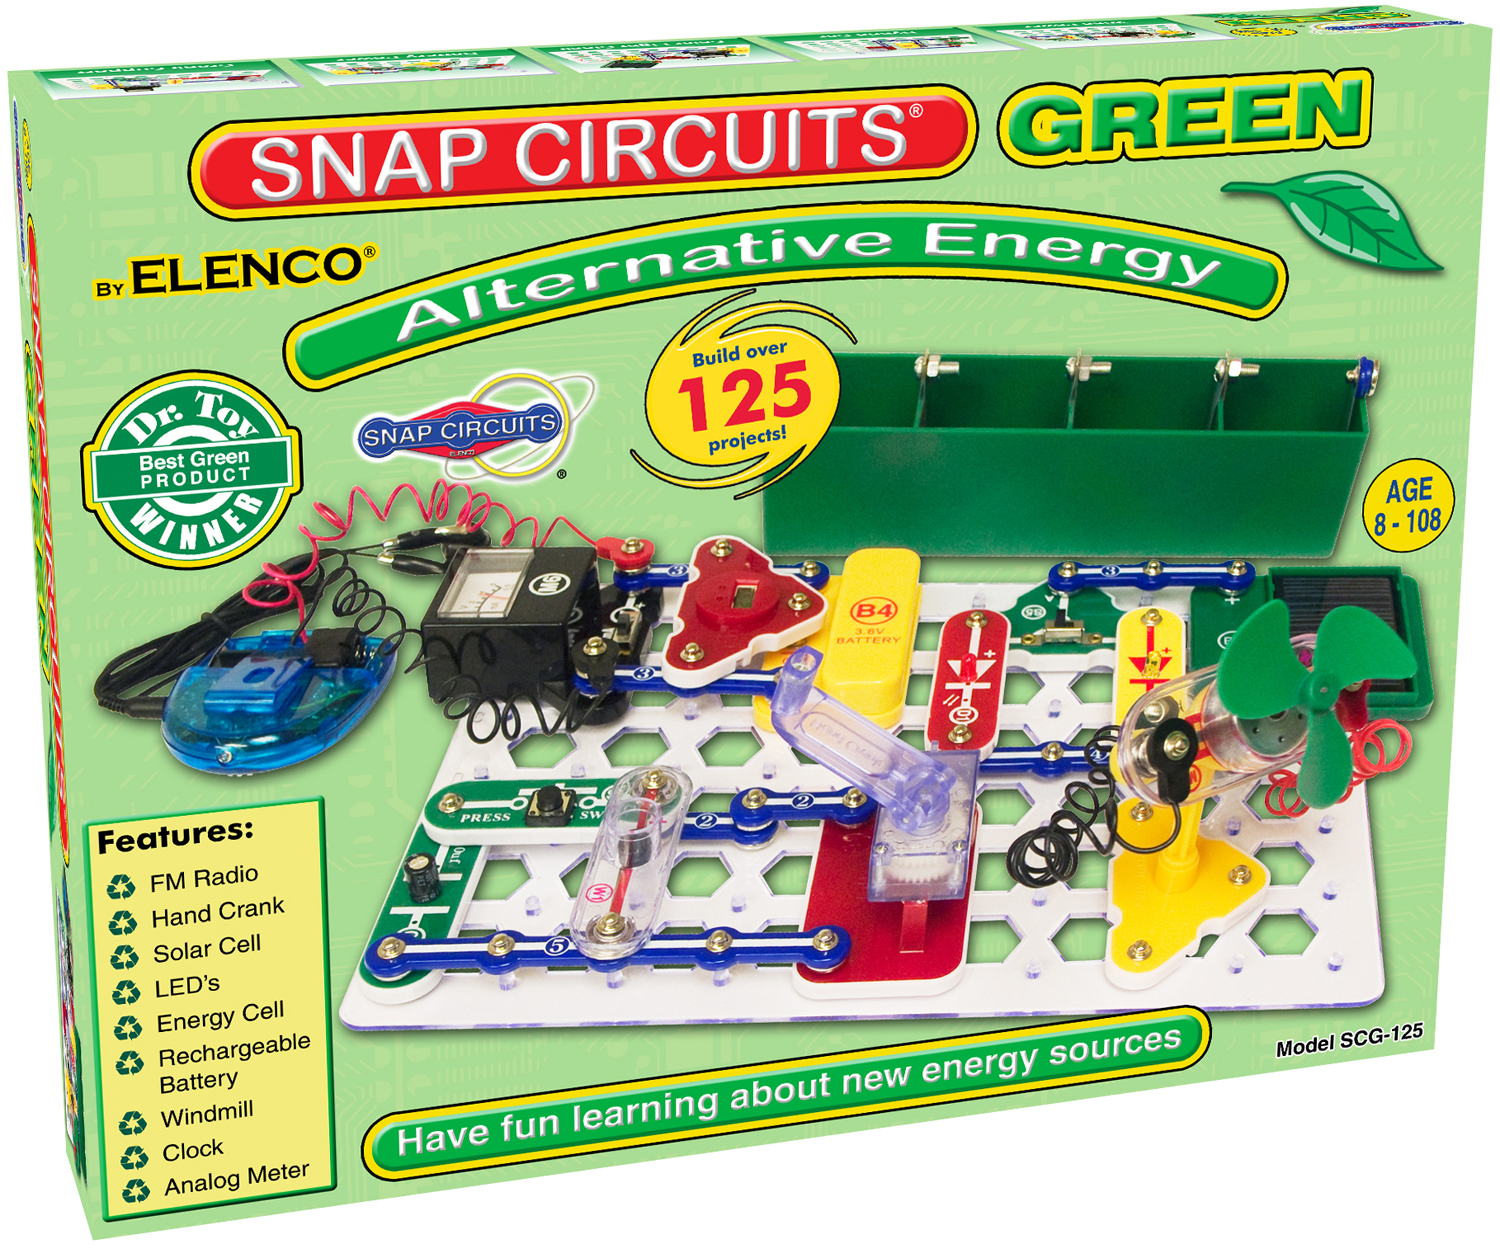 snap circuits green sg125 electronics learning lab electronic kits rh electronickits com electronic snap circuits 300 electronic snap circuits sc-300